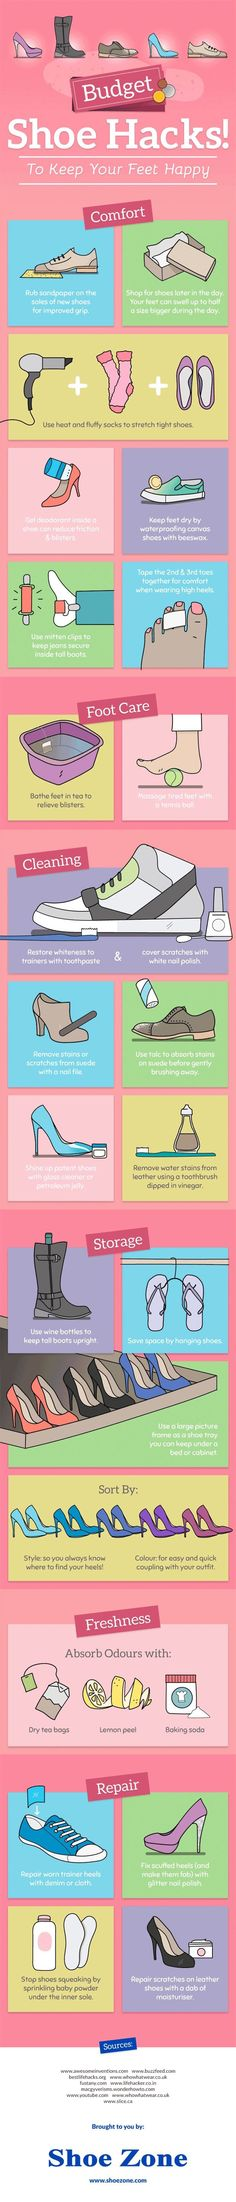 Fix shoes. Fix squeaky shoes by putting powder under the insole!